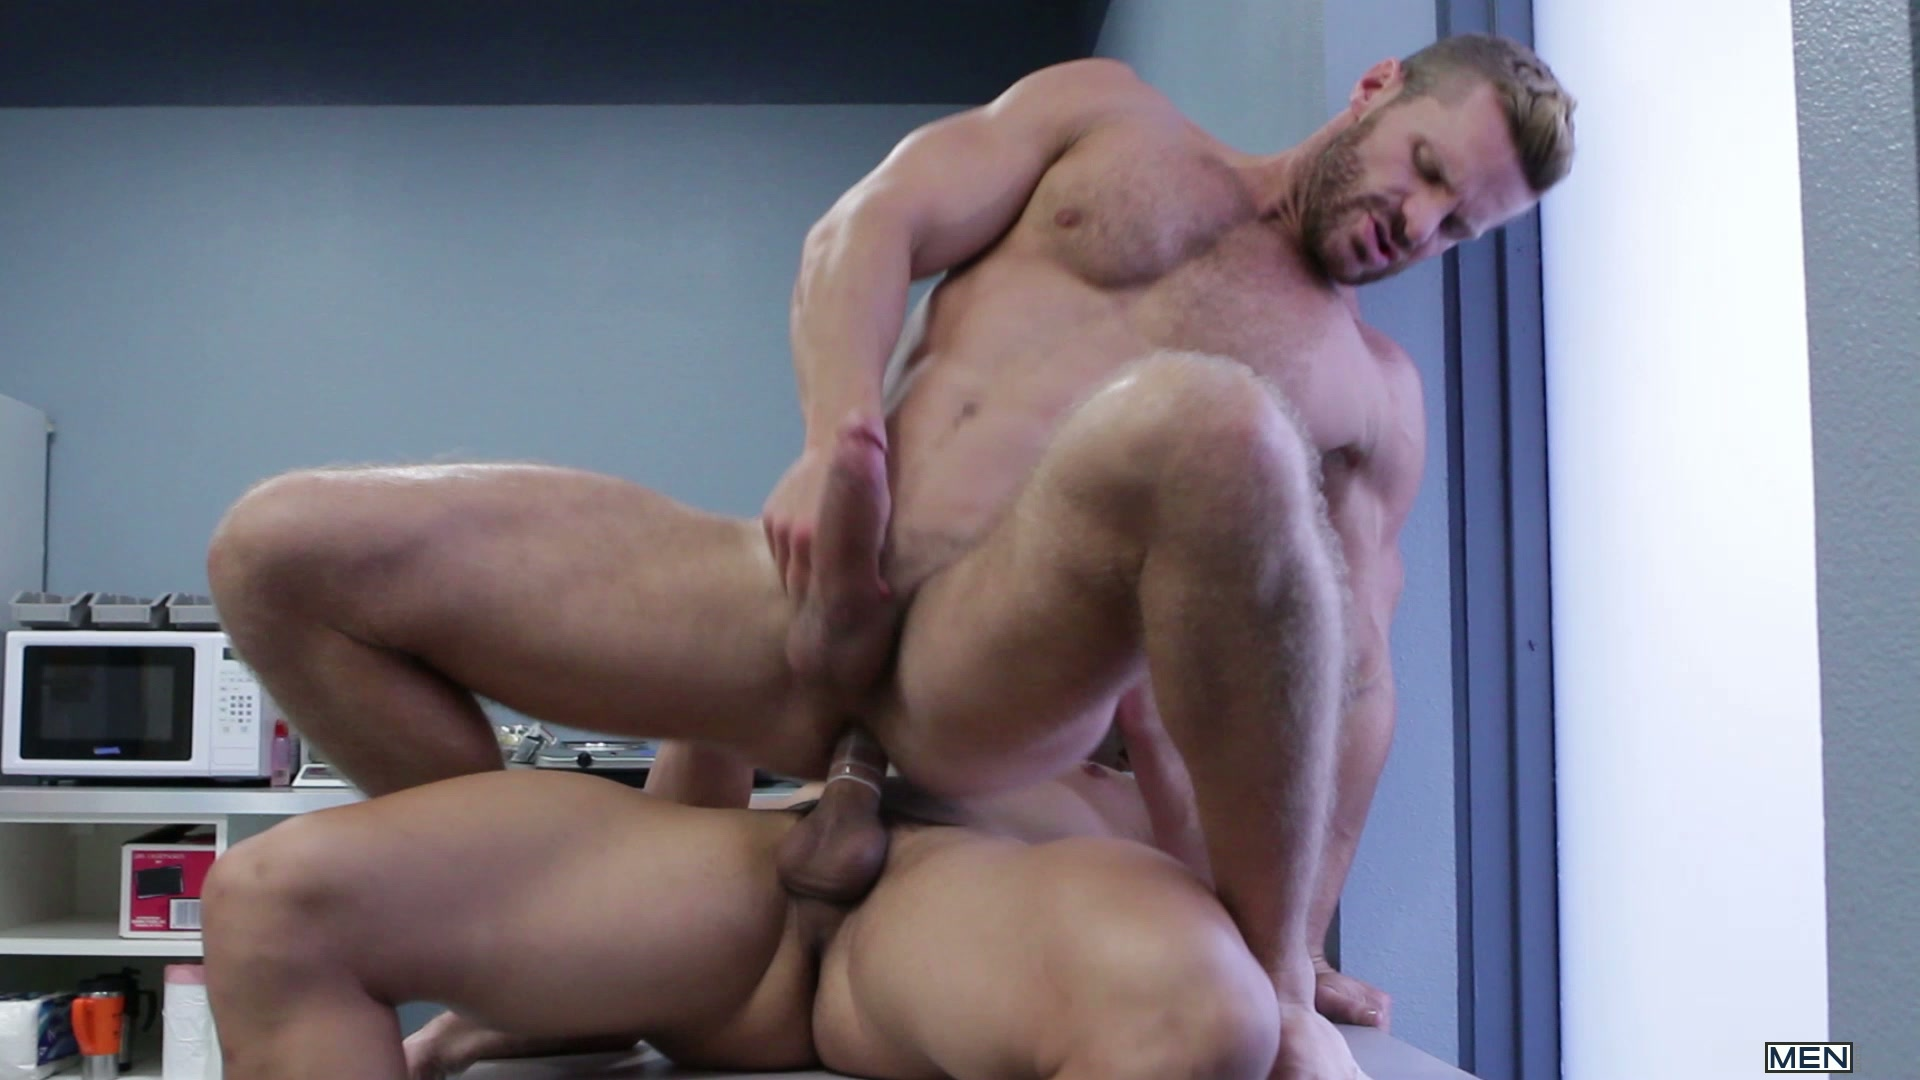 Watch Gaywatch Part 3 – Dmh – Drill My Hole – Landon Conrad And Topher Di Maggio (MEN.COM) Gay Porn Tube Videos Gifs And Free XXX HD Sex Movies Photos Online